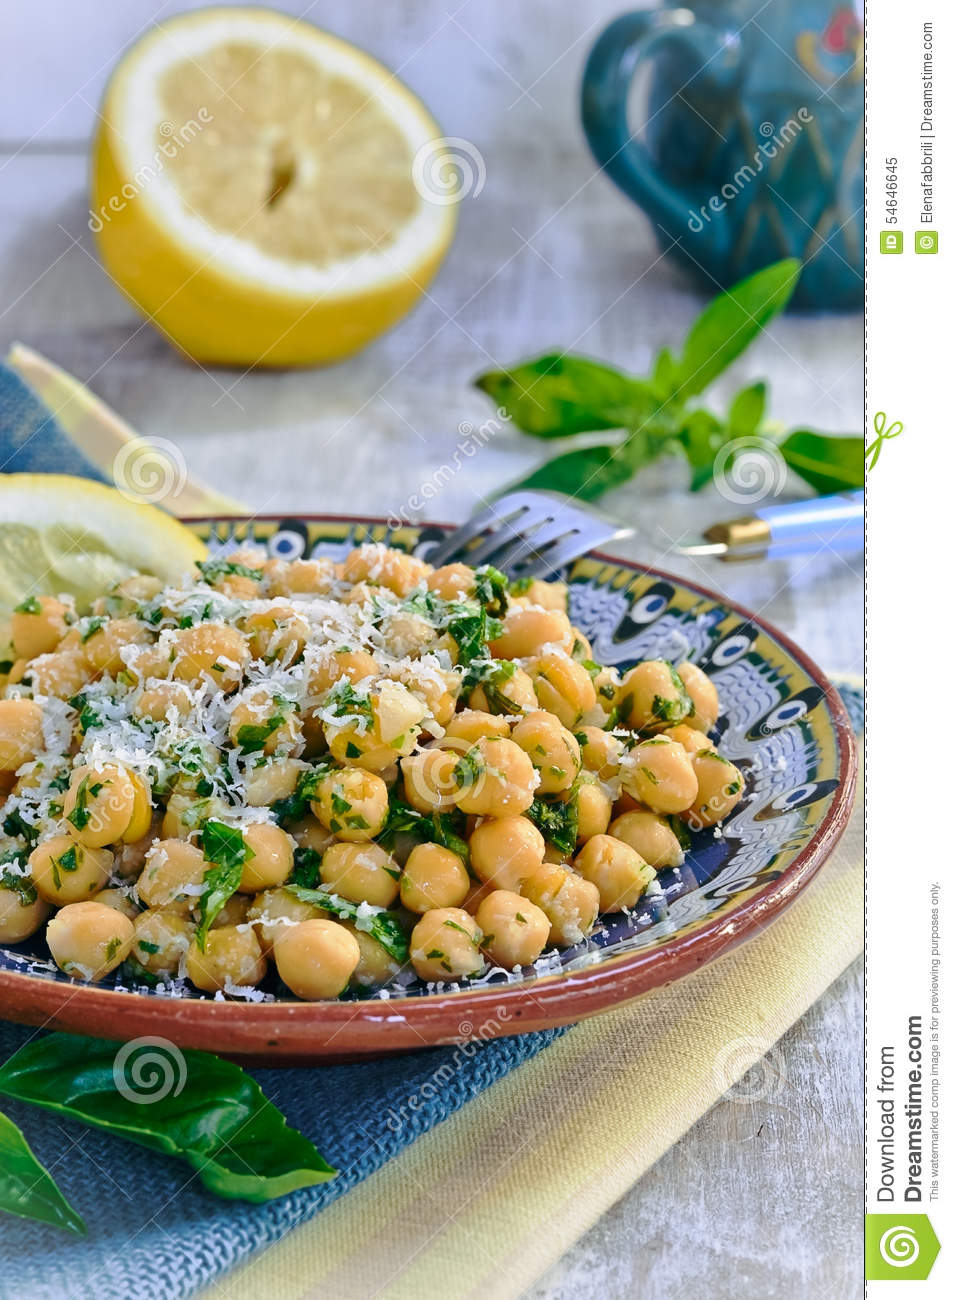 Chickpea Salad Stock Photo - Image: 54646645